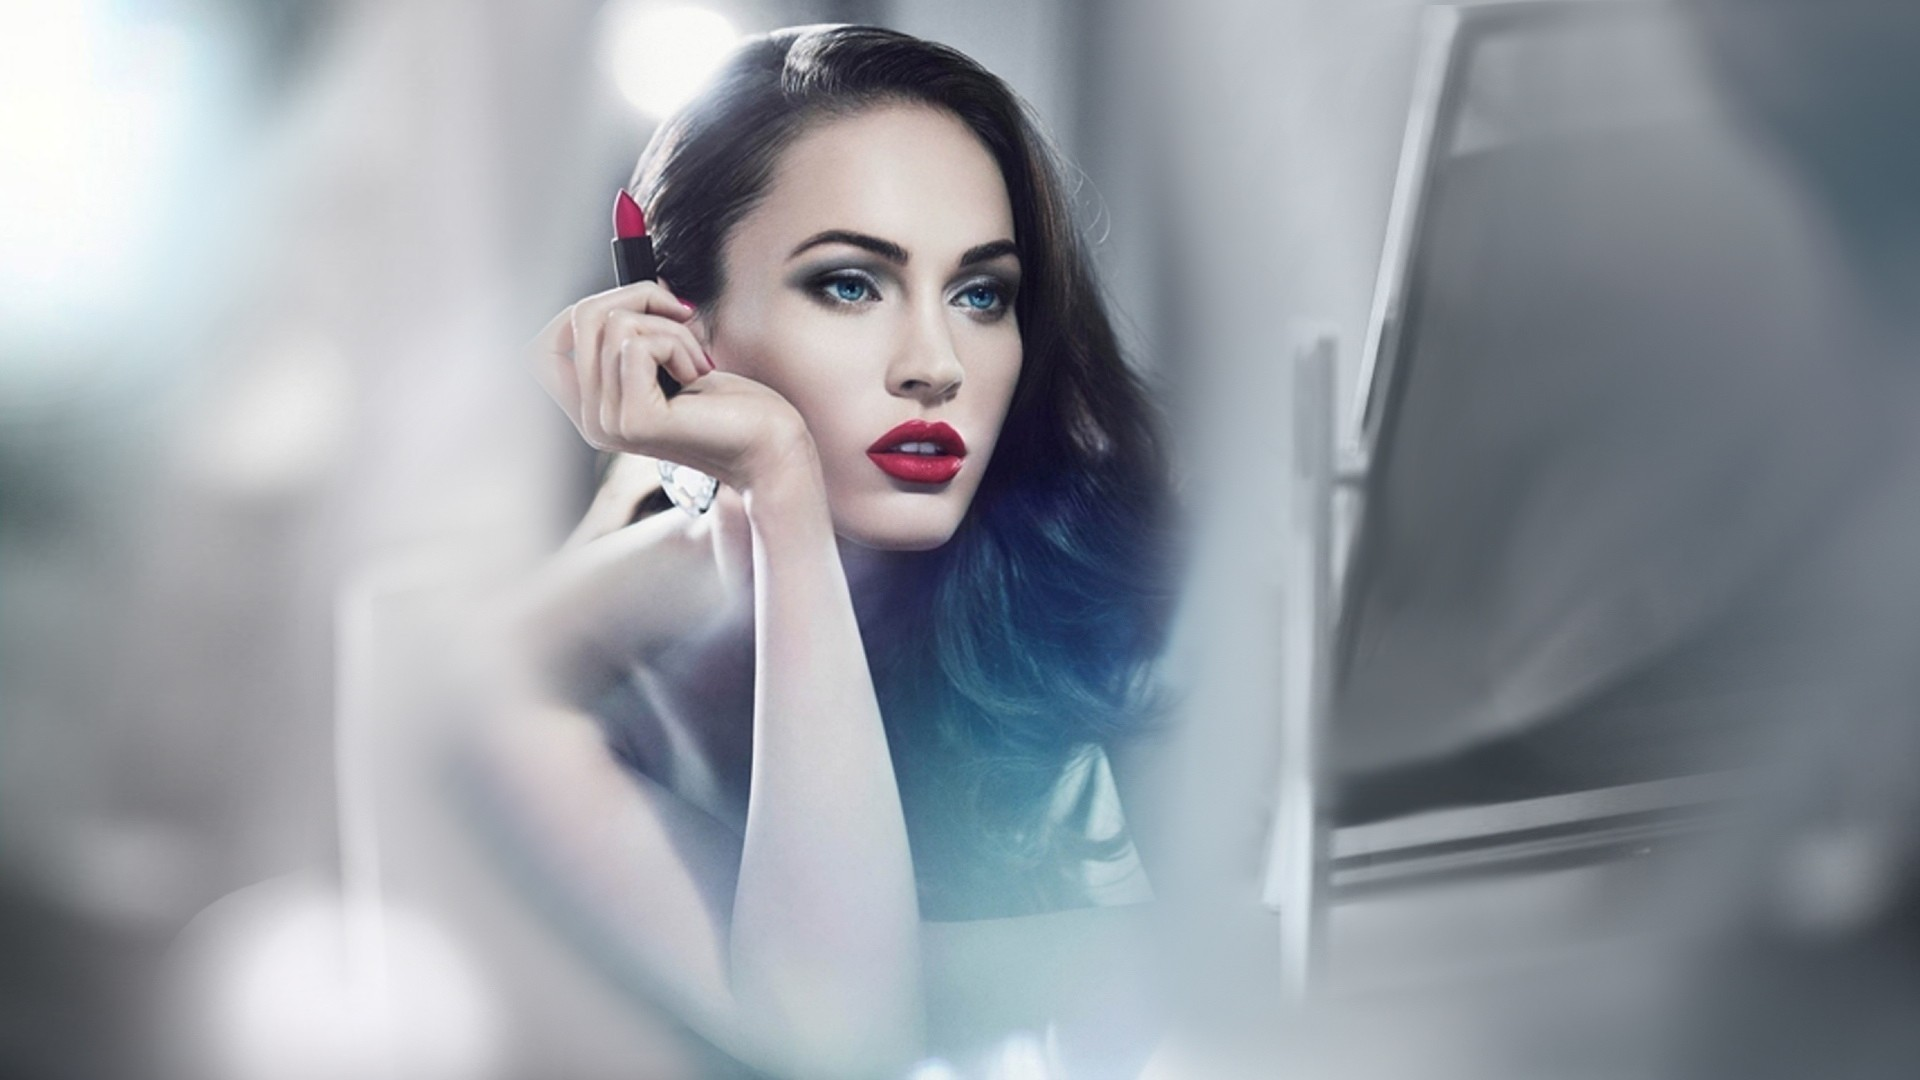 Megan Fox 13 Wallpapers HD Wallpapers 1920x1080